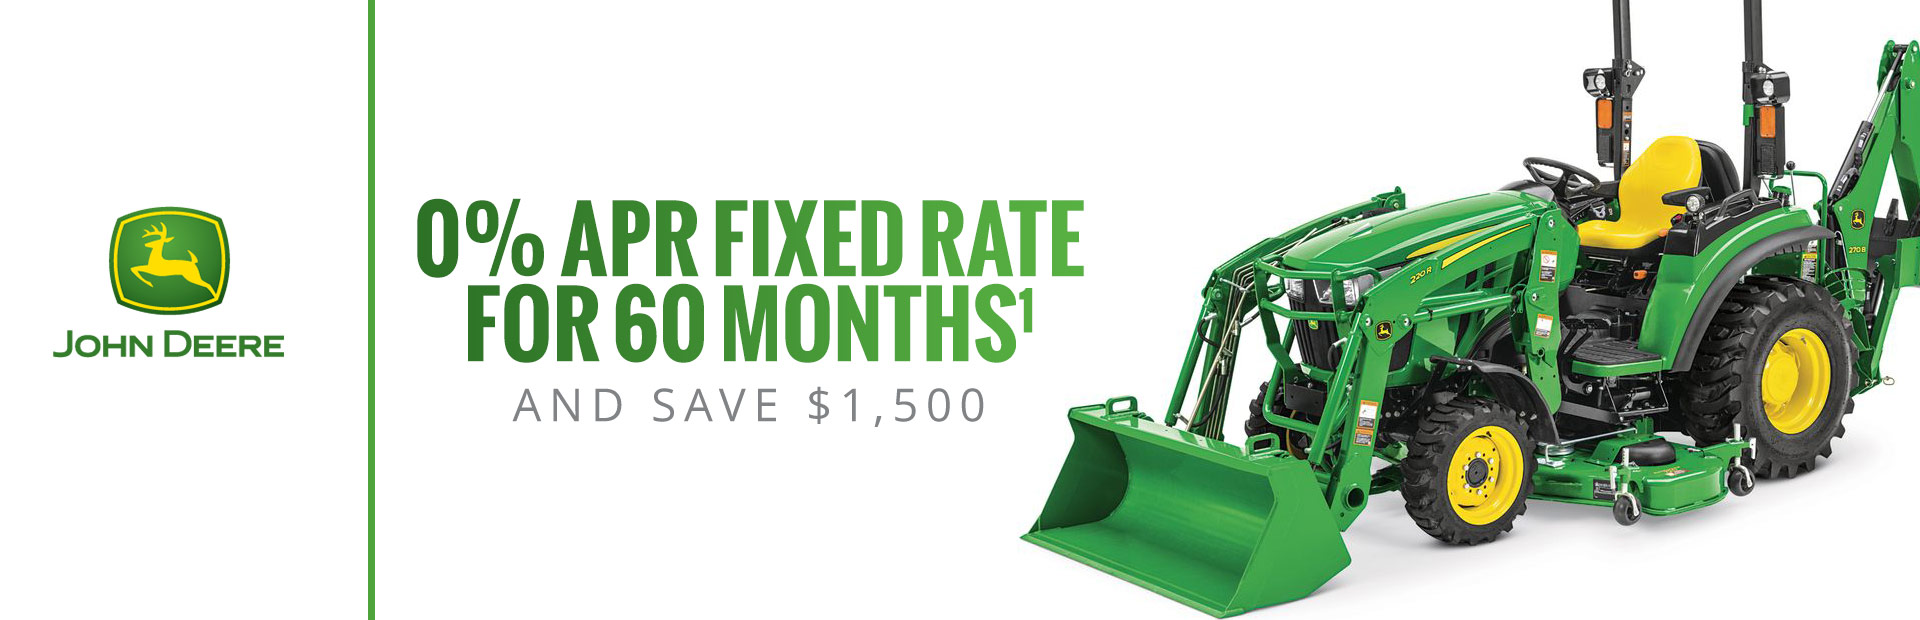 John Deere: 0% APR fixed rate for 60 Months AND Save $1,500